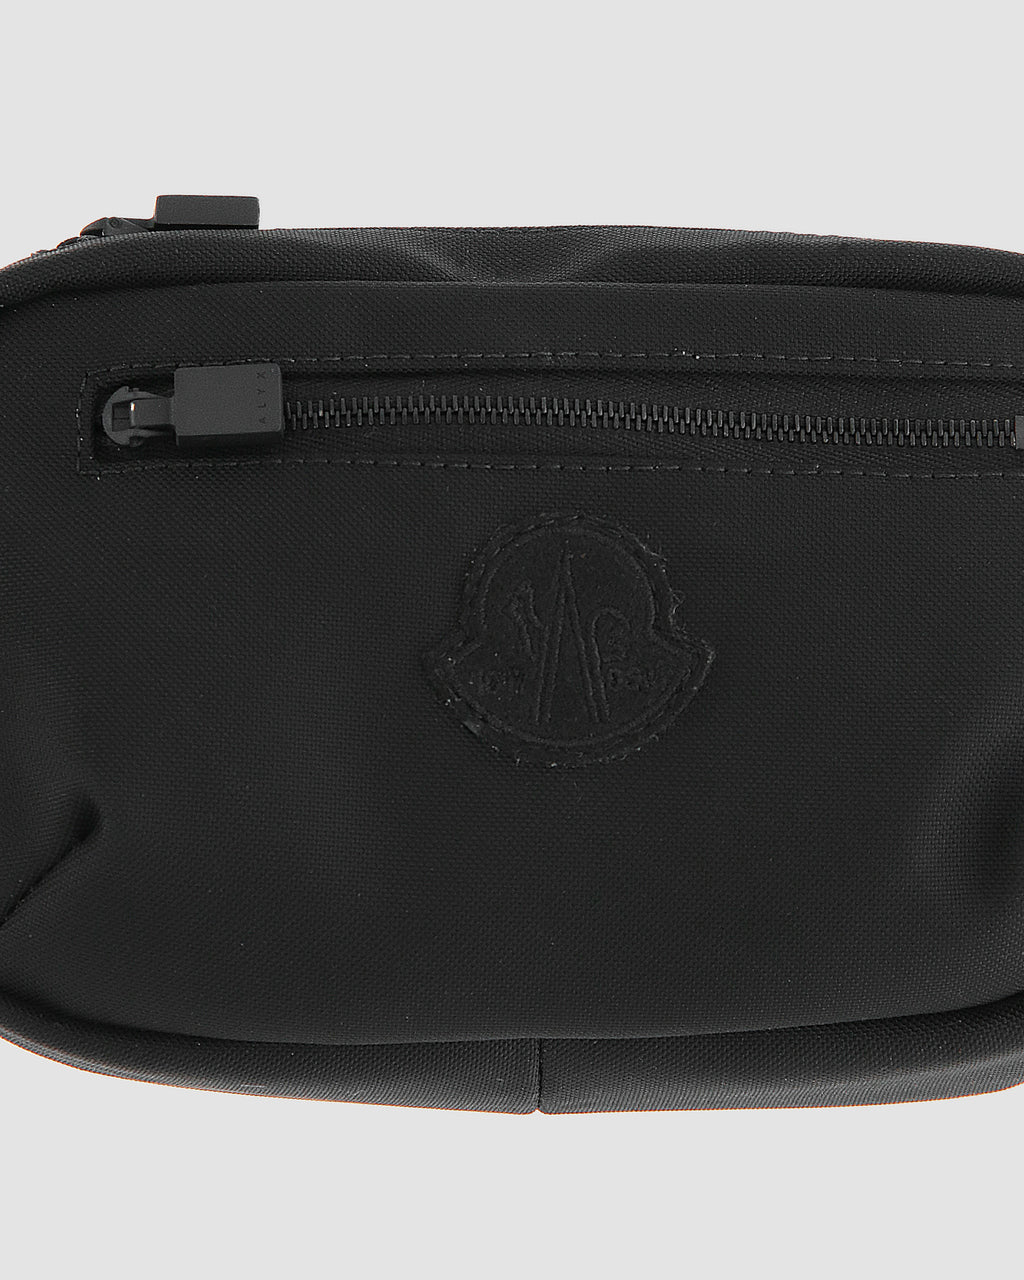 1017 ALYX 9SM | MONCLER BELT BAG MM | Bag | Bag Online, BELT BAGS, BLACK, Google Shopping, Man, Moncler, S20, UNISEX, Woman